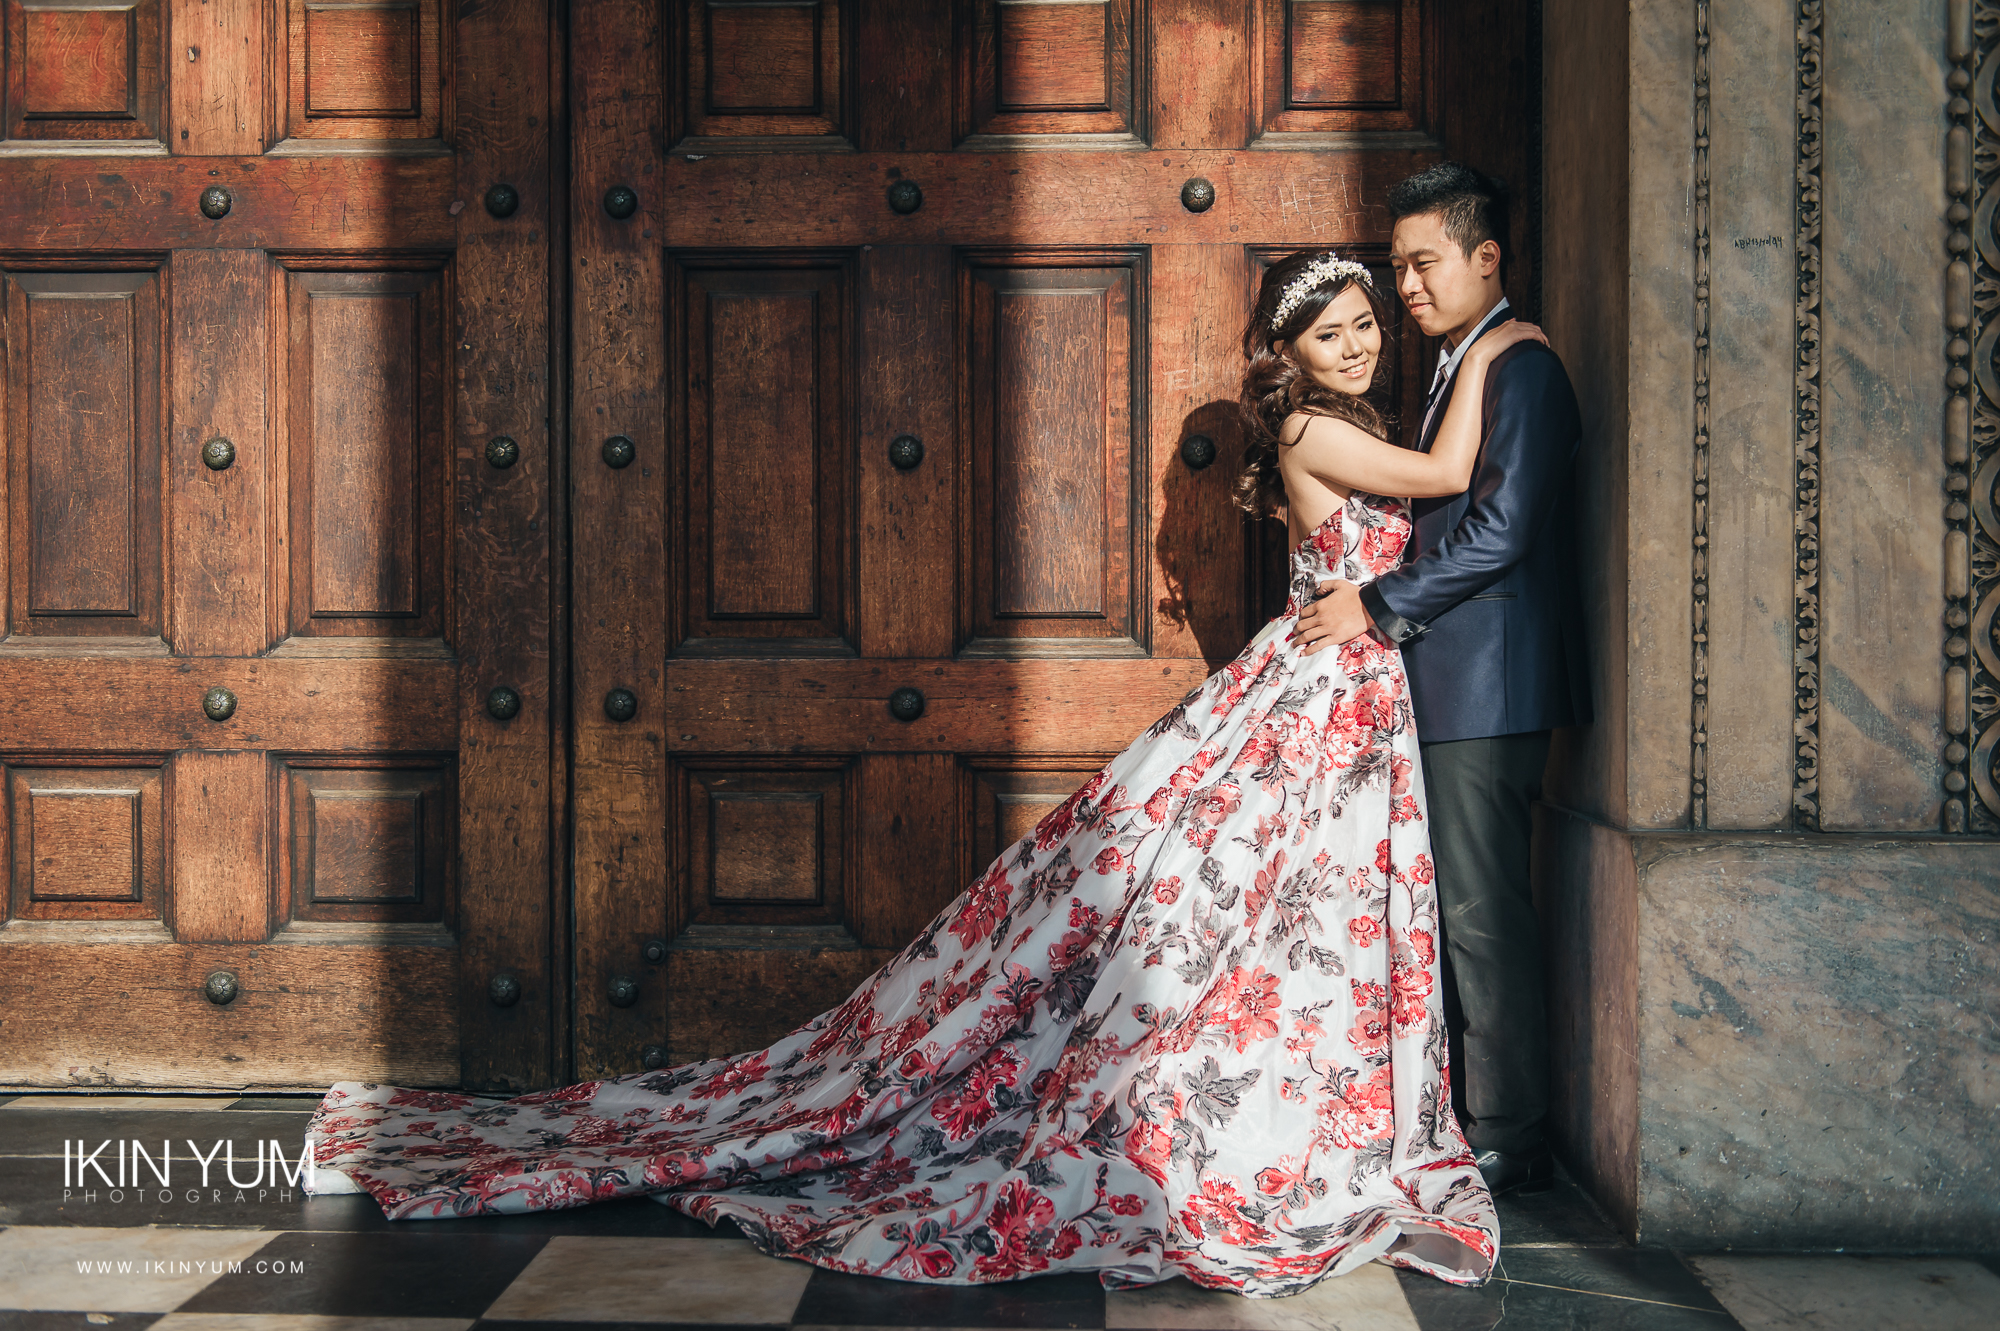 Pre-Wedding Shoot London Susan + Alvin - Ikin Yum Photography-007.jpg